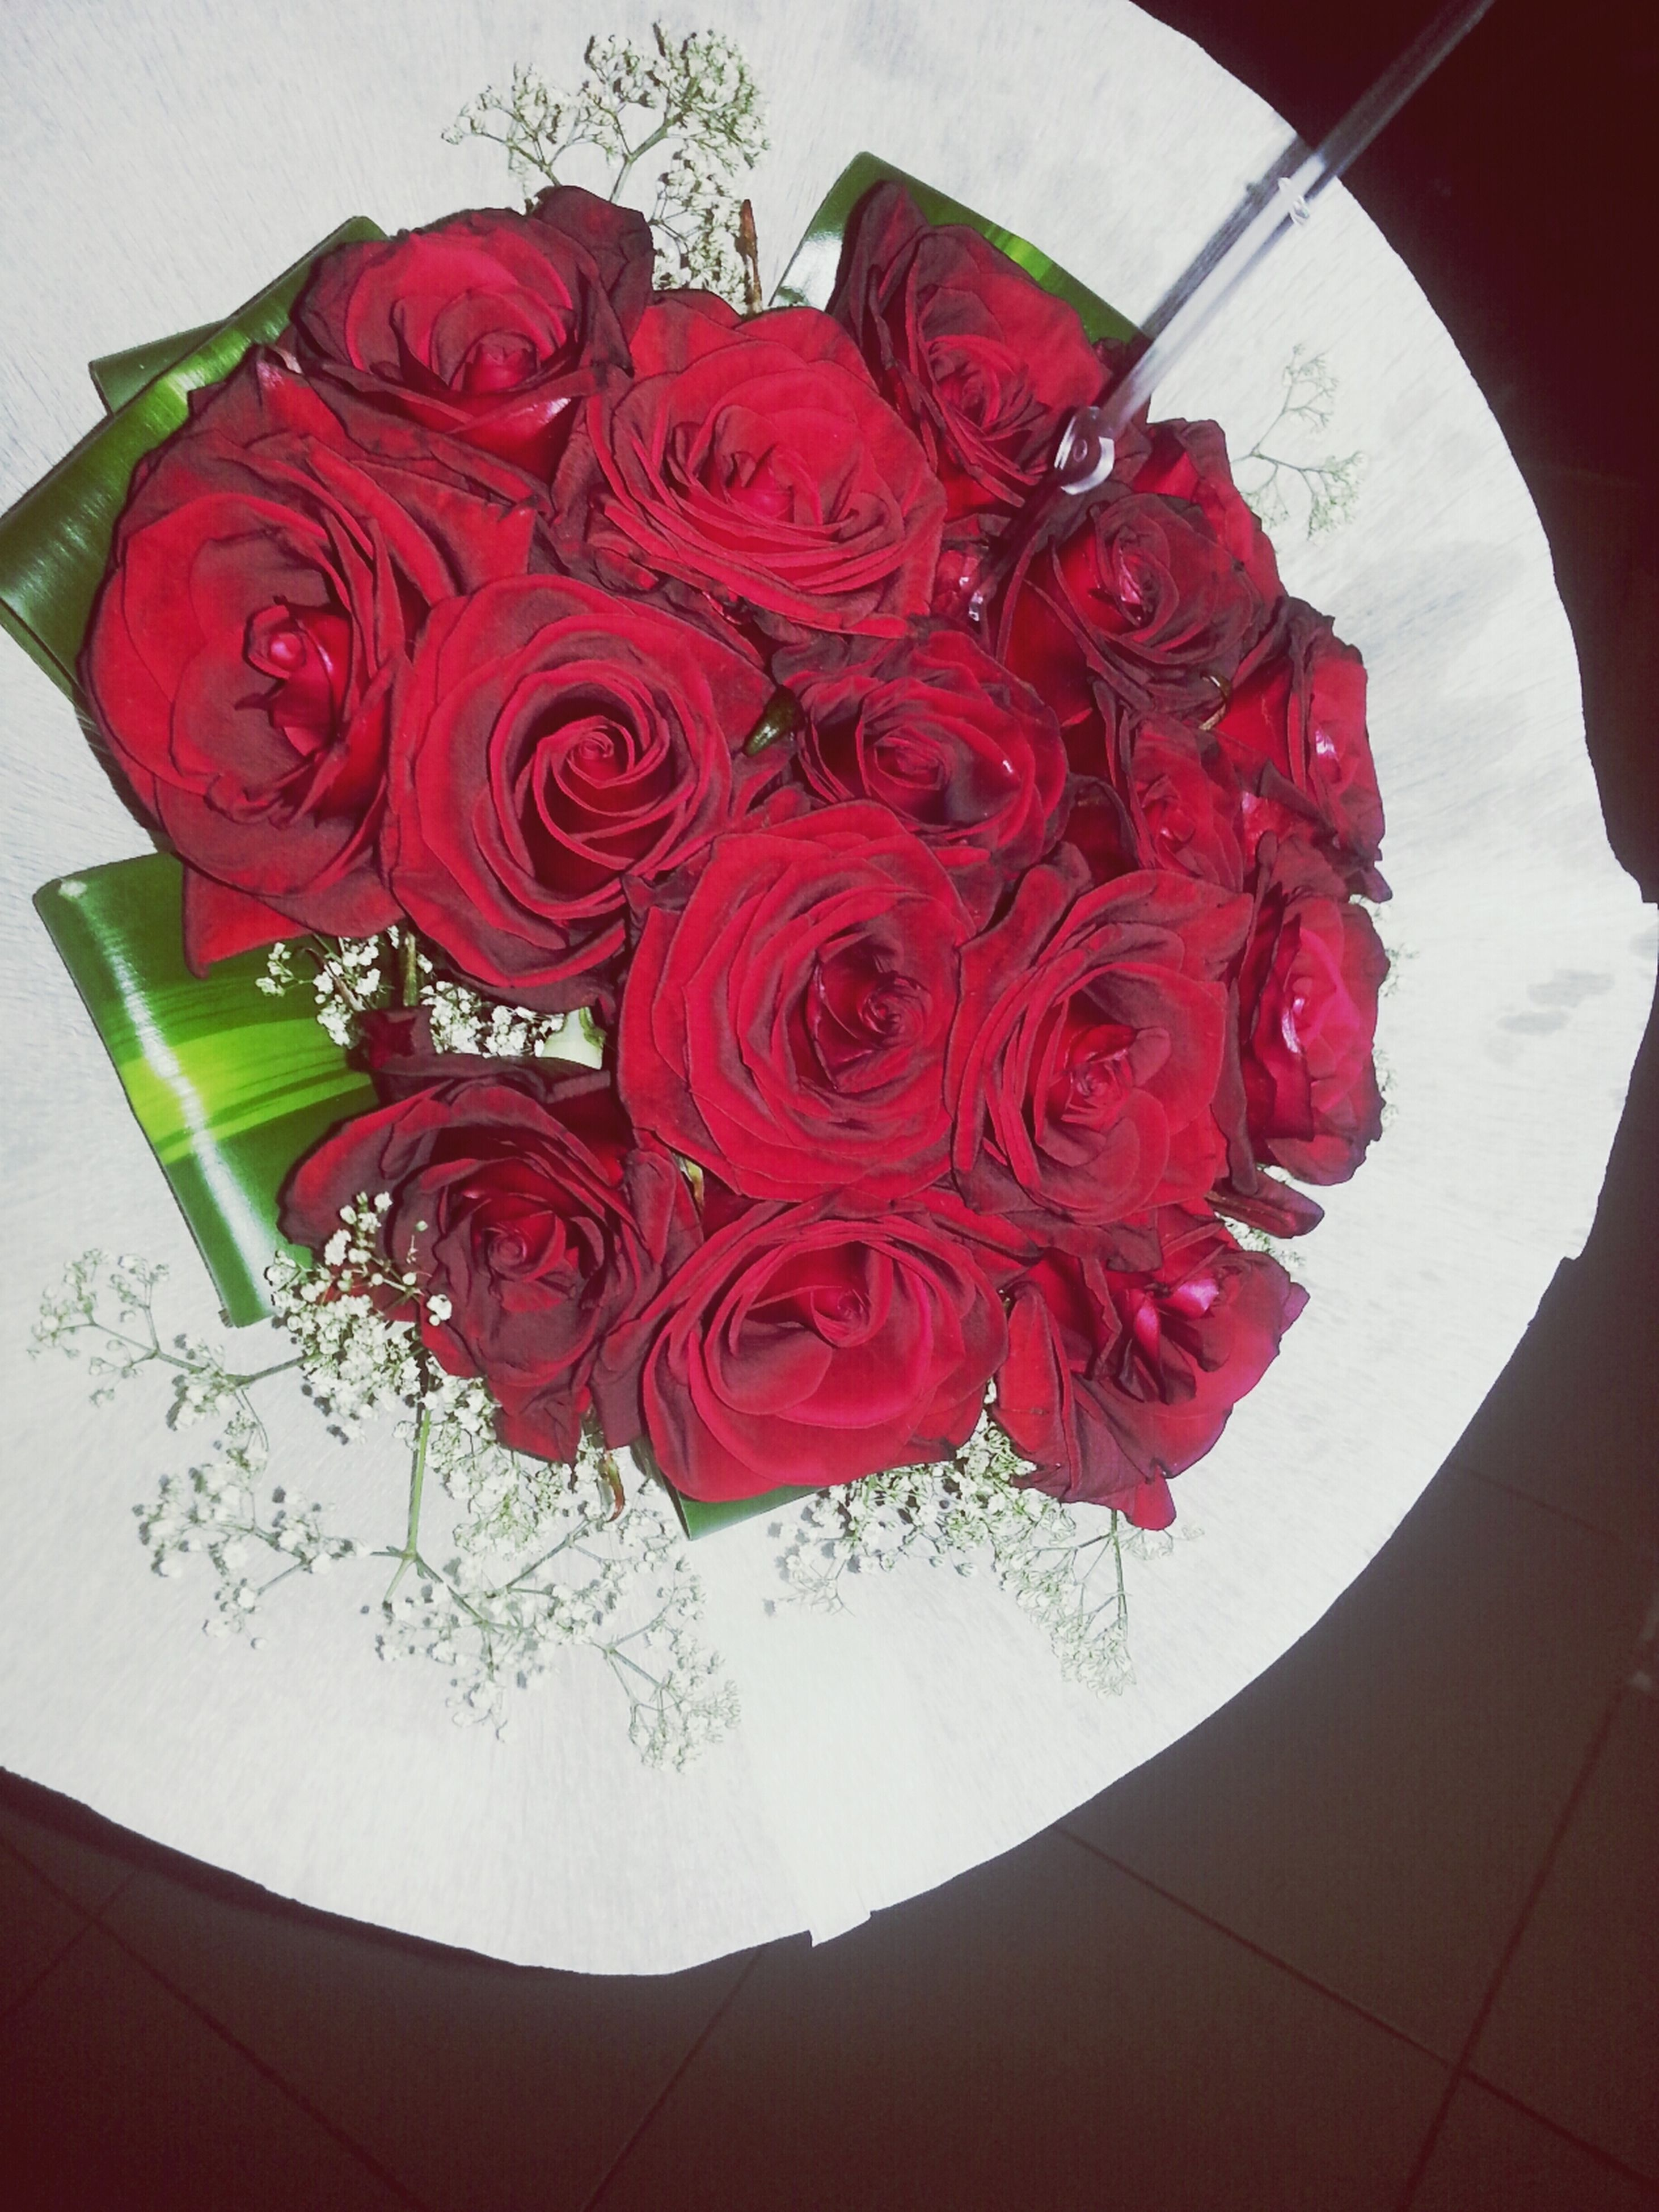 flower, red, indoors, freshness, petal, flower head, rose - flower, fragility, close-up, rose, table, bouquet, high angle view, vase, beauty in nature, decoration, still life, no people, pink color, nature